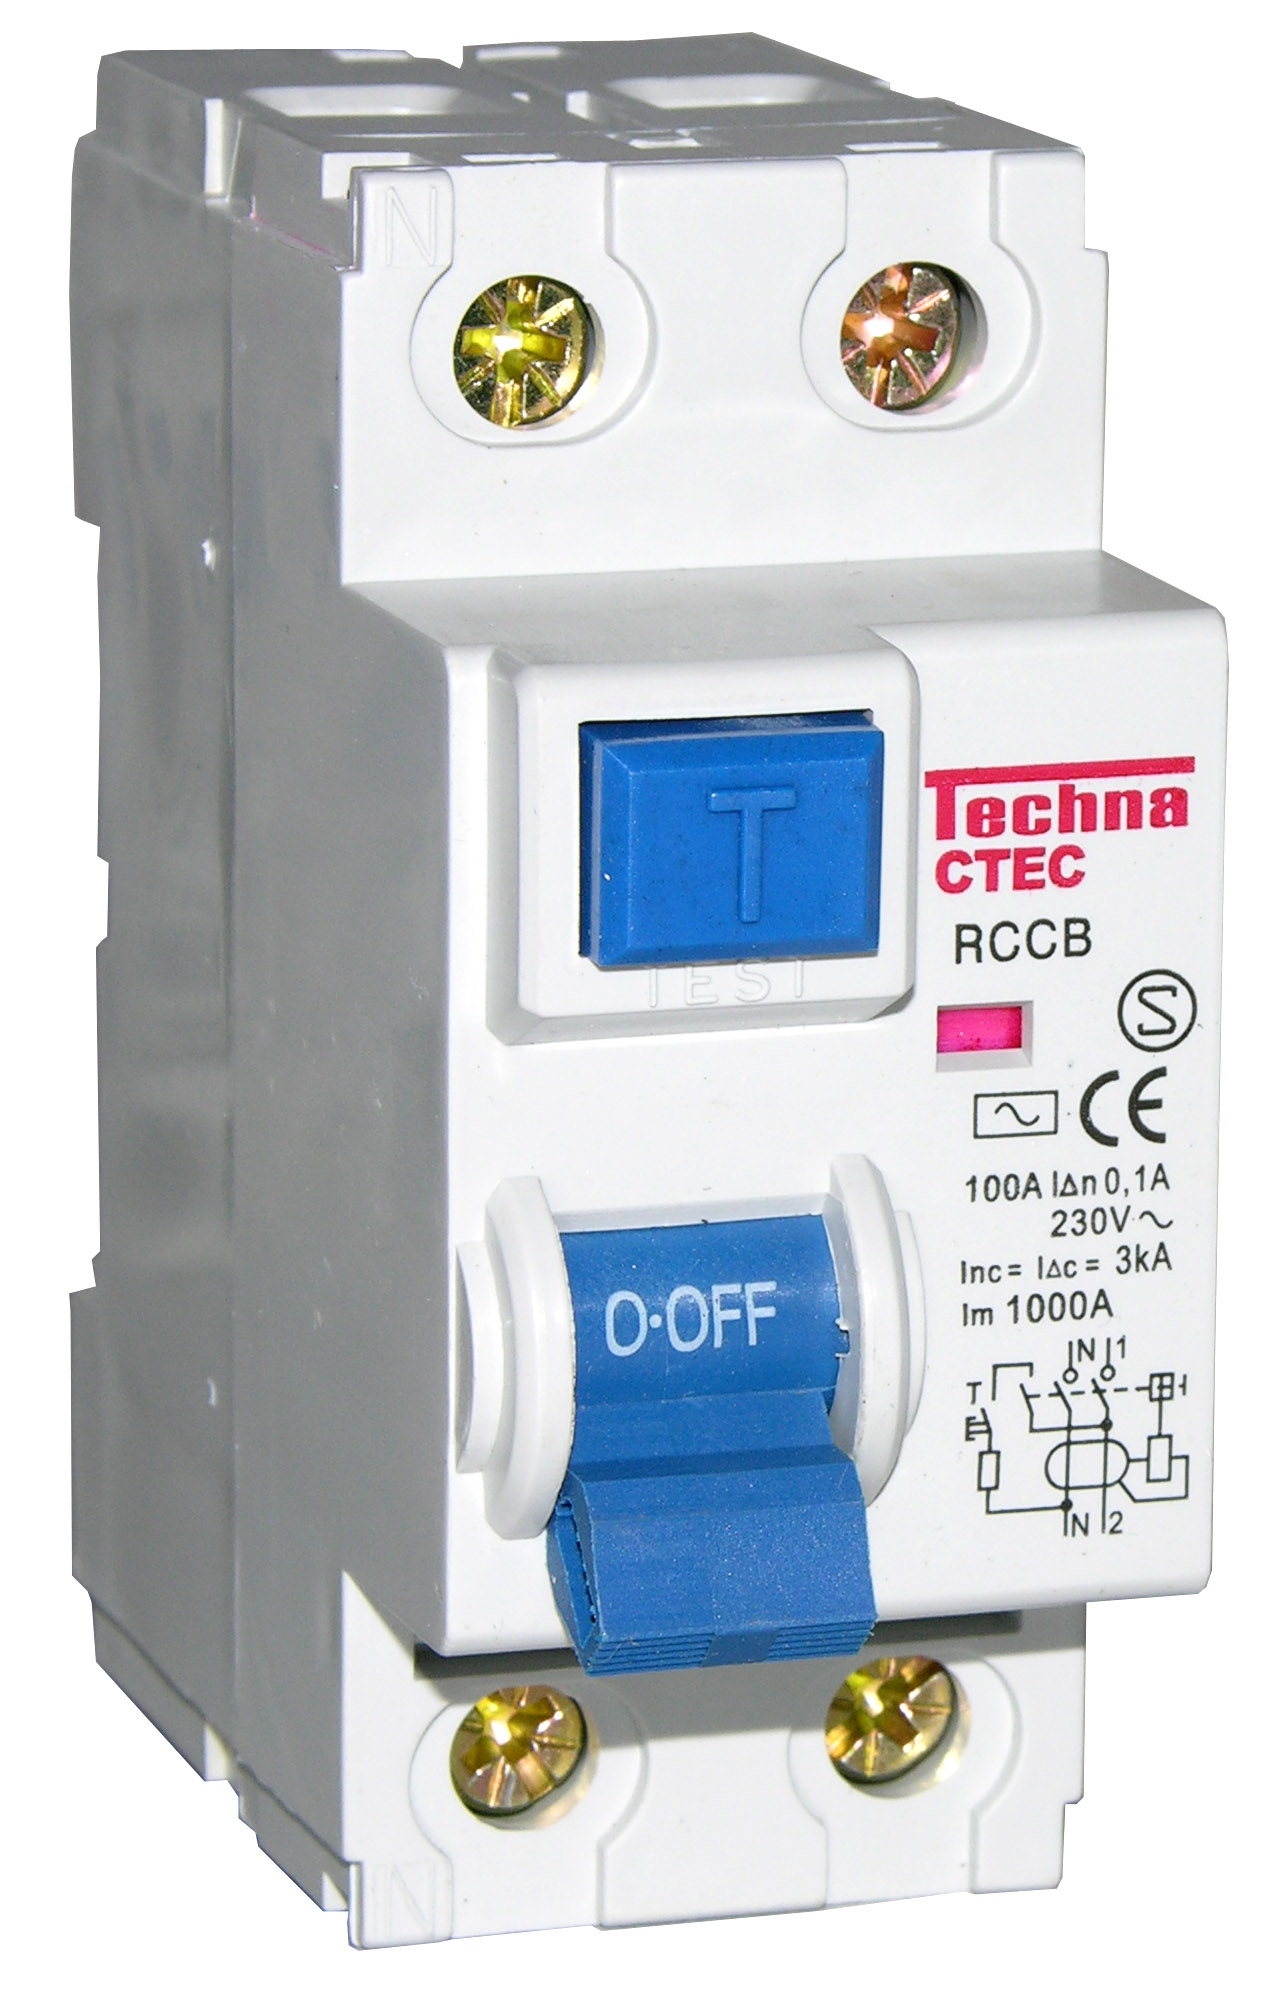 Residual Current Device Ground Fault Circuit Interrupter Safety Outlet This Type Of